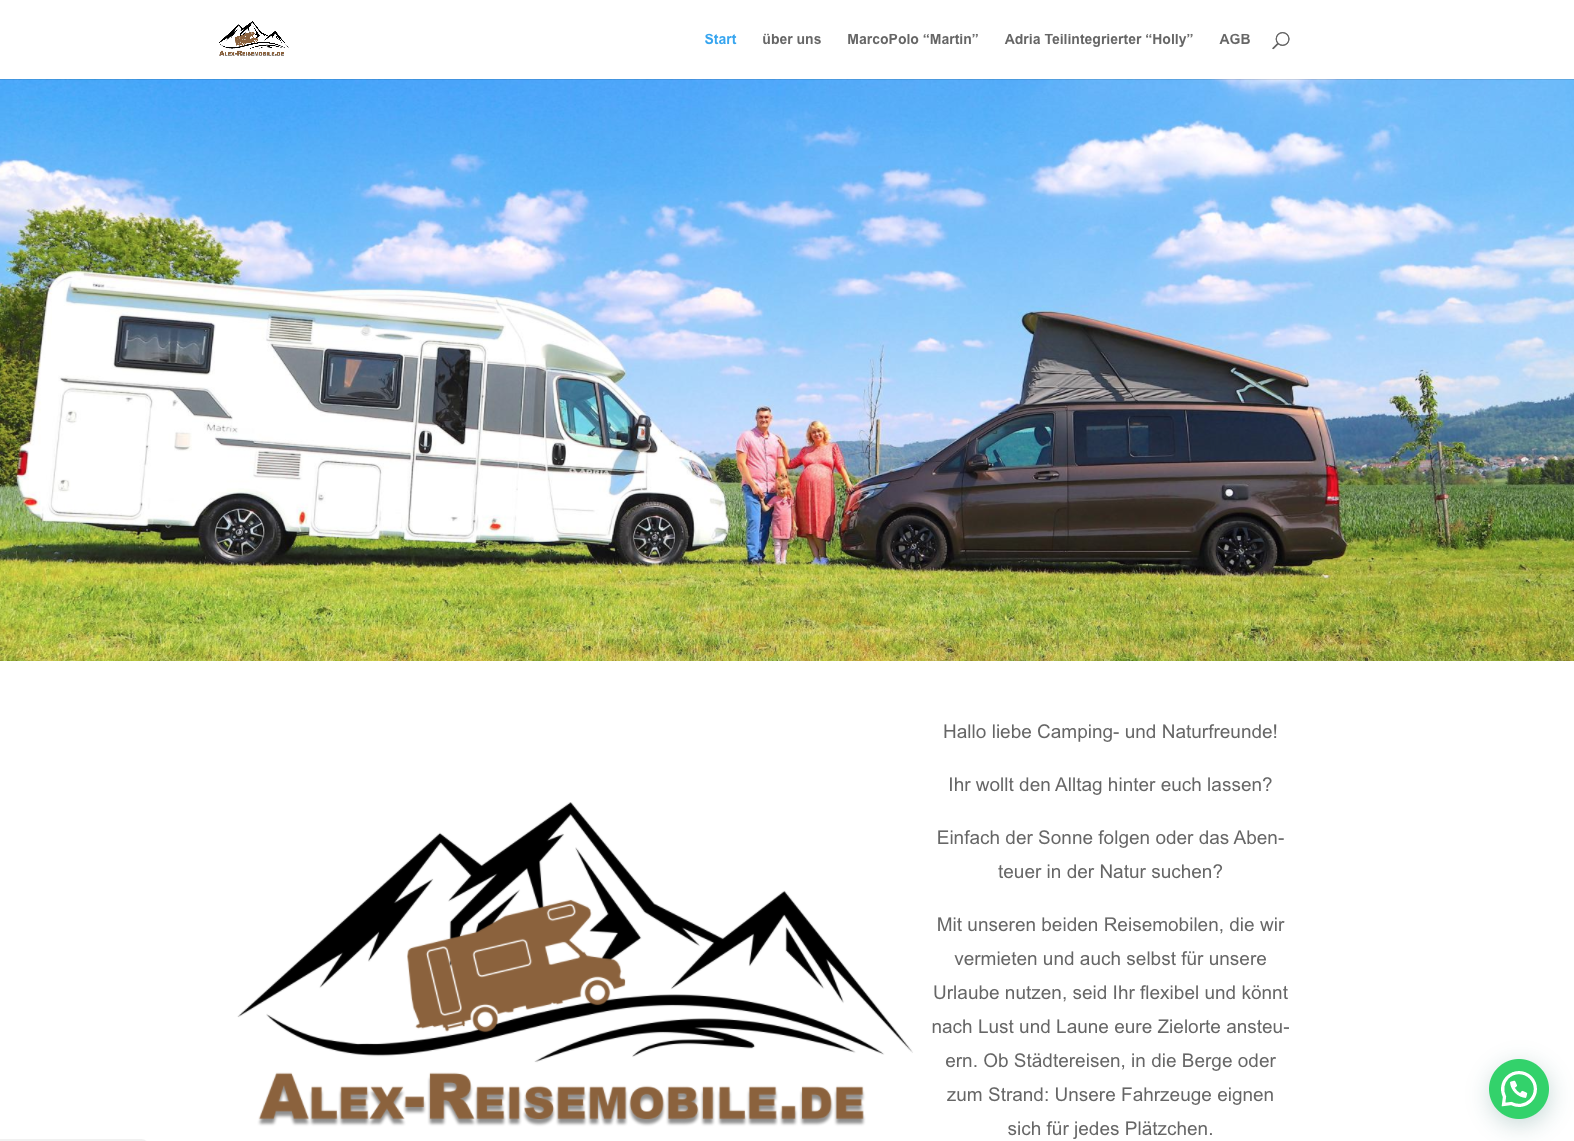 Alex-Reisemobile.de